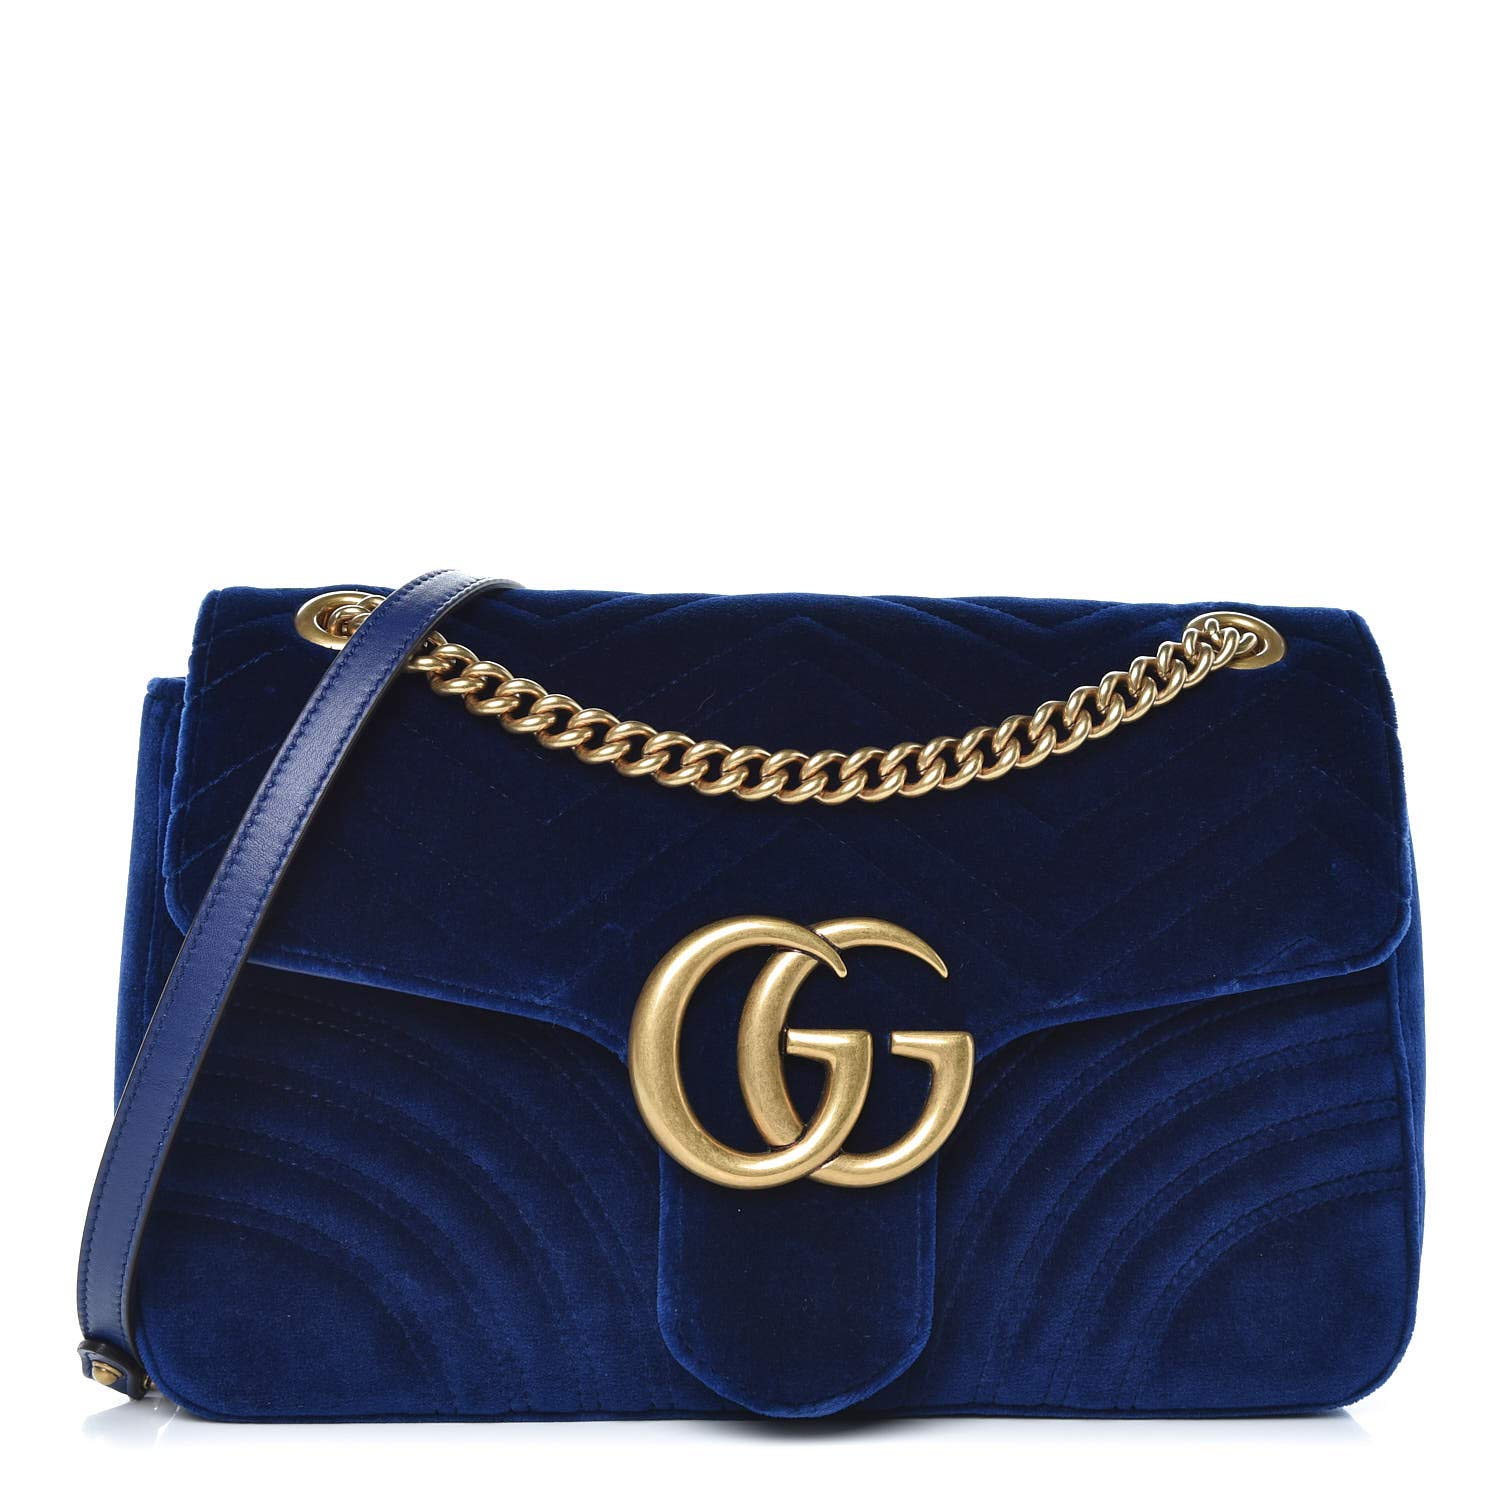 0f2f80c8f137 Amazon.com: Gucci Marmont Mini Small Chevron Cobalt Navy Blue Velvet ...